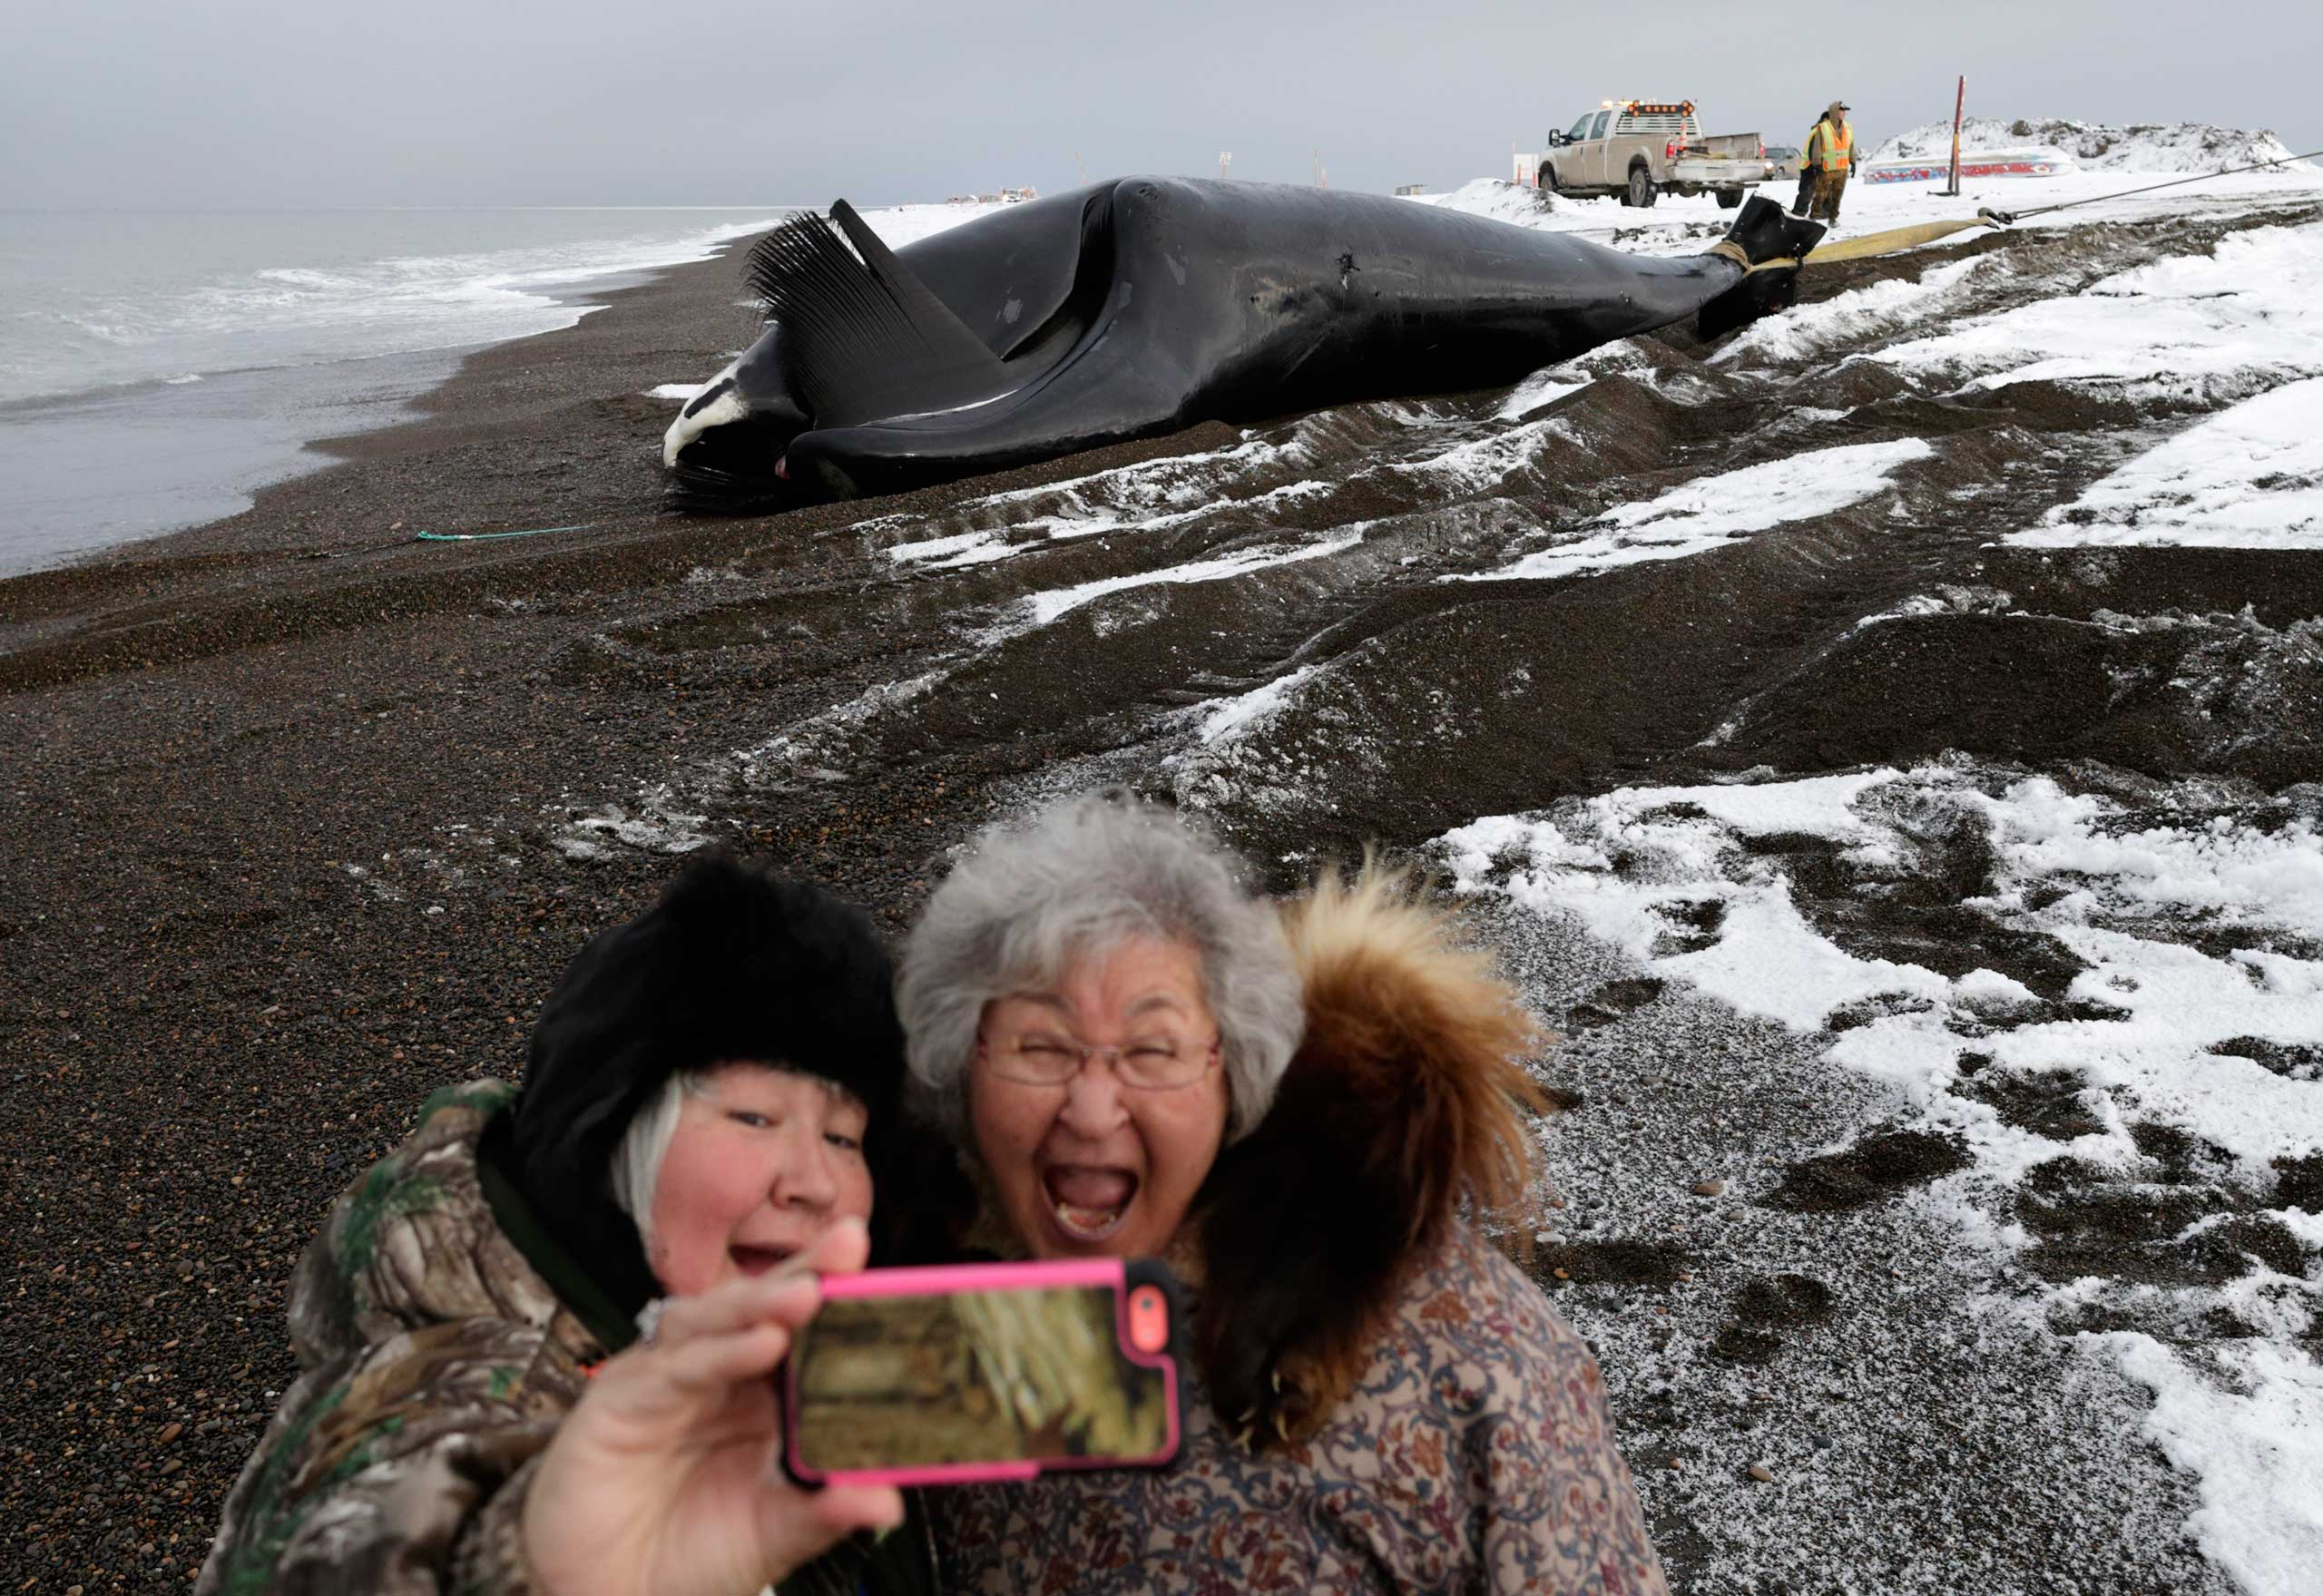 Molly Pederson, right, and her daughter Laura Patkotak take a picture as a bowhead whale caught by Alaska Native subsistence hunters from their family is brought ashore in Barrow, Ala., Oct. 7, 2014.